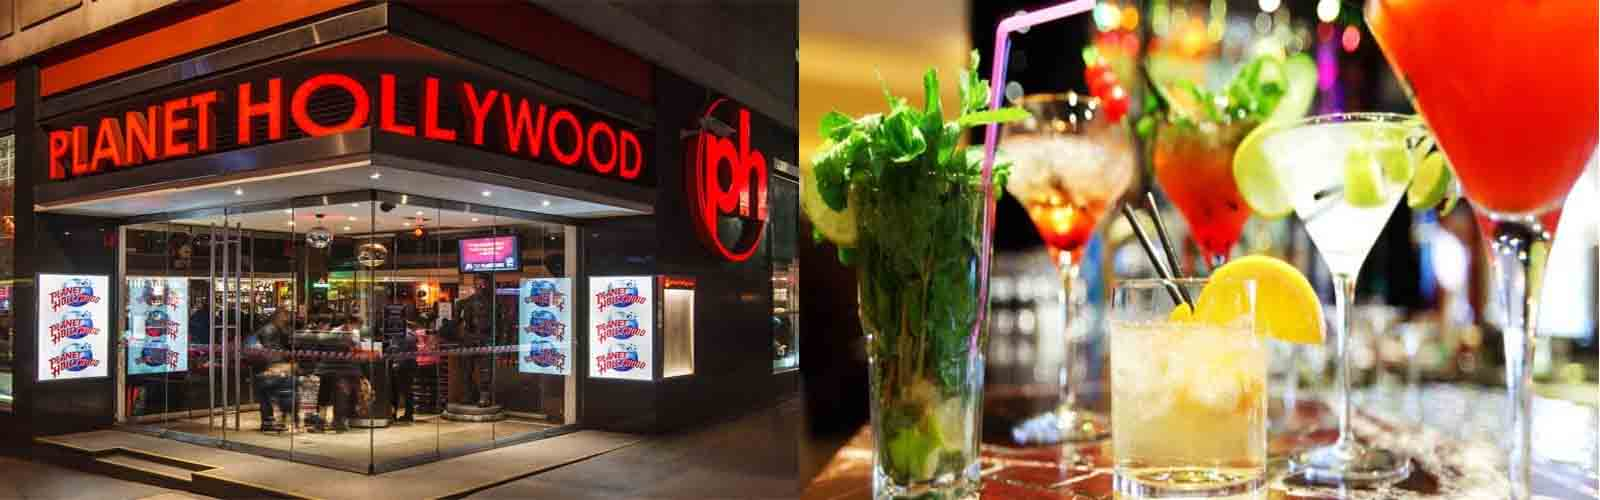 Get 2 for 1 drinks at Planet Hollywood bar with the London Nightlife Ticket